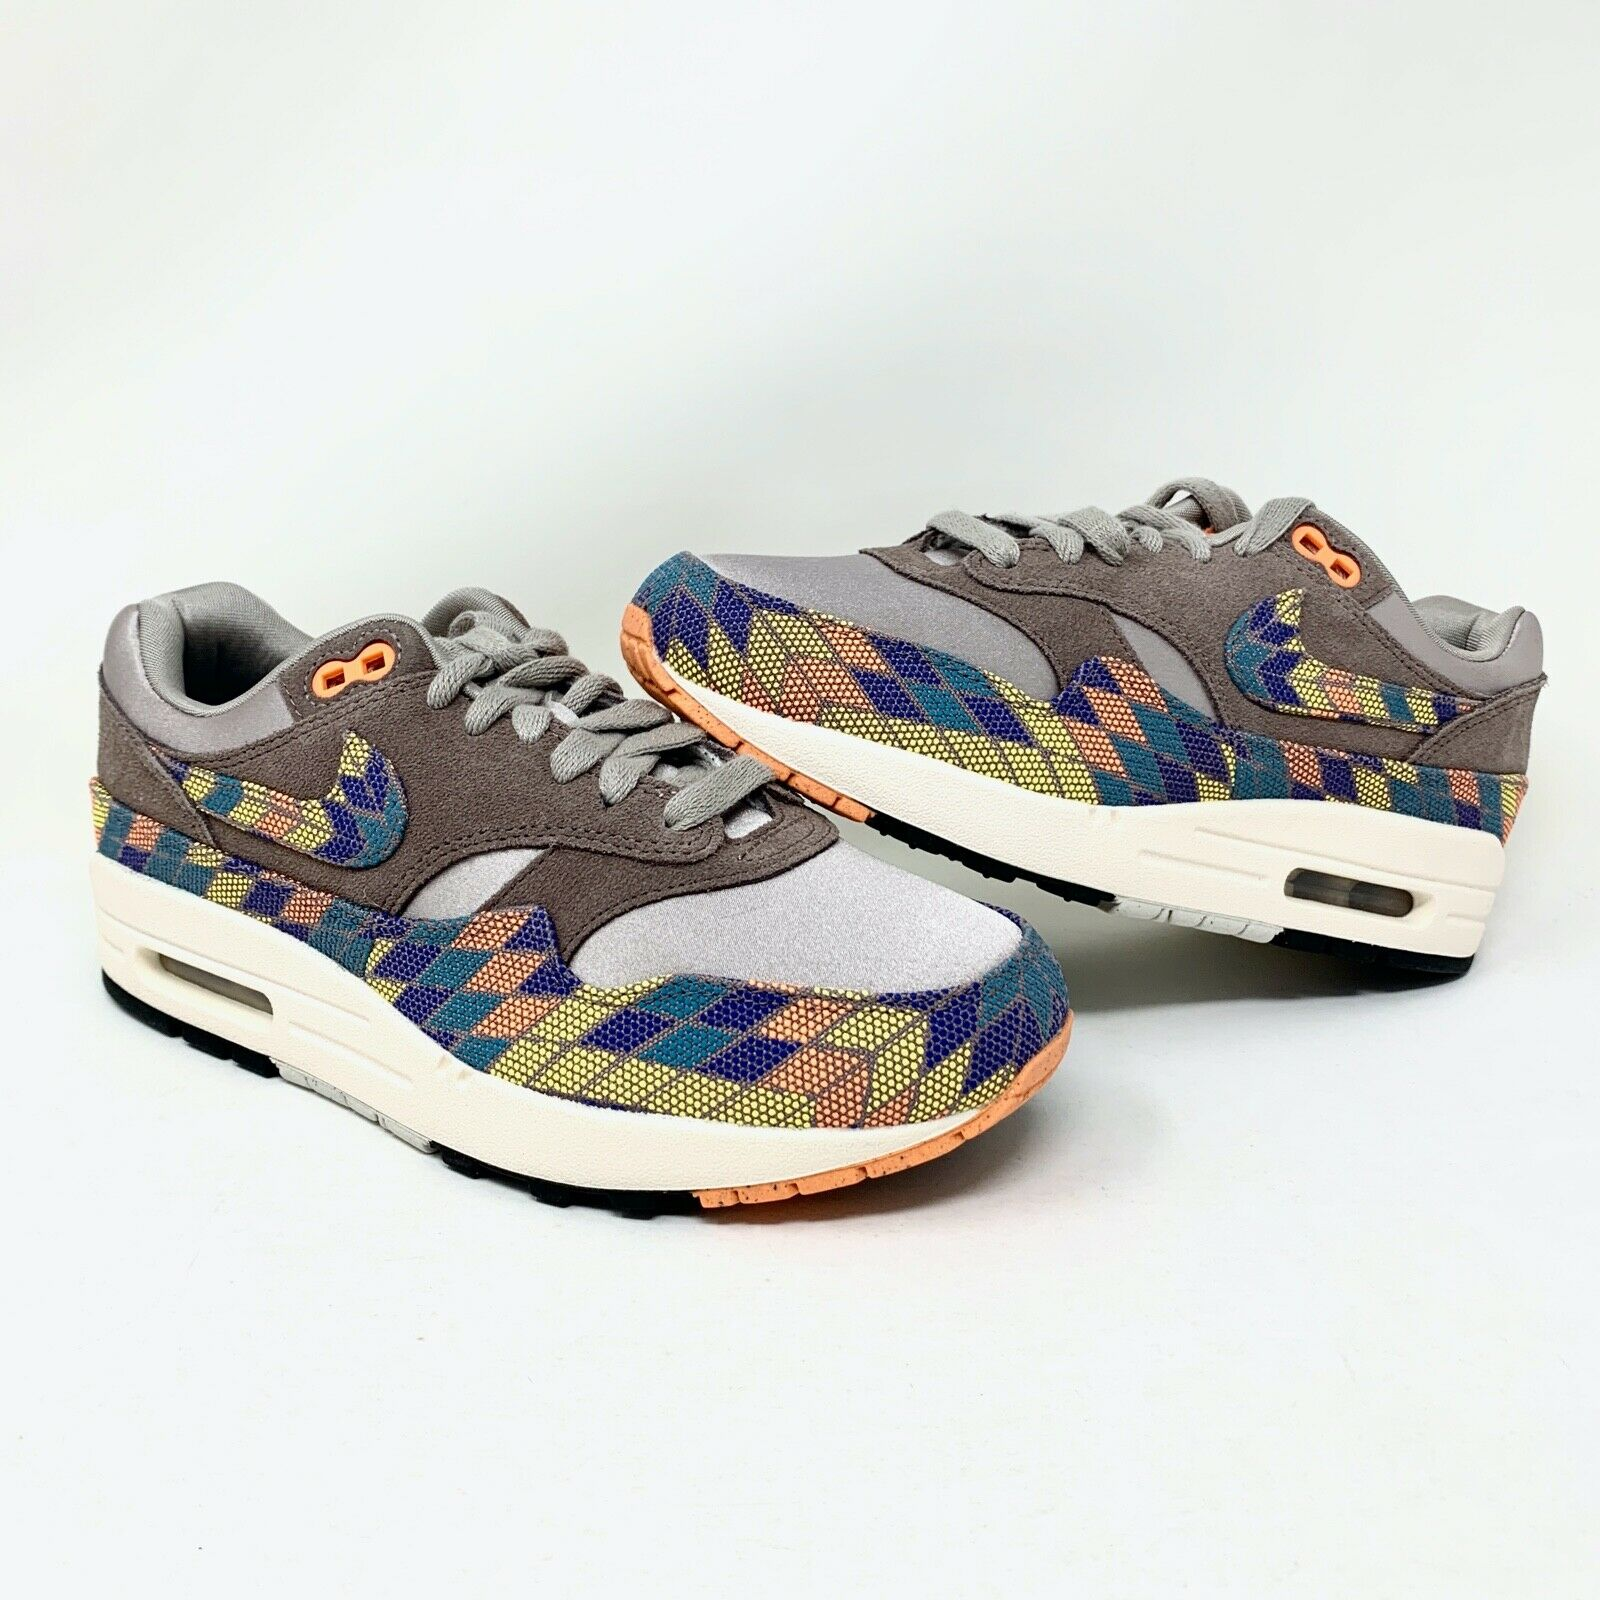 Size 5.5 - Nike Air Max 1 N7 for sale online | eBay